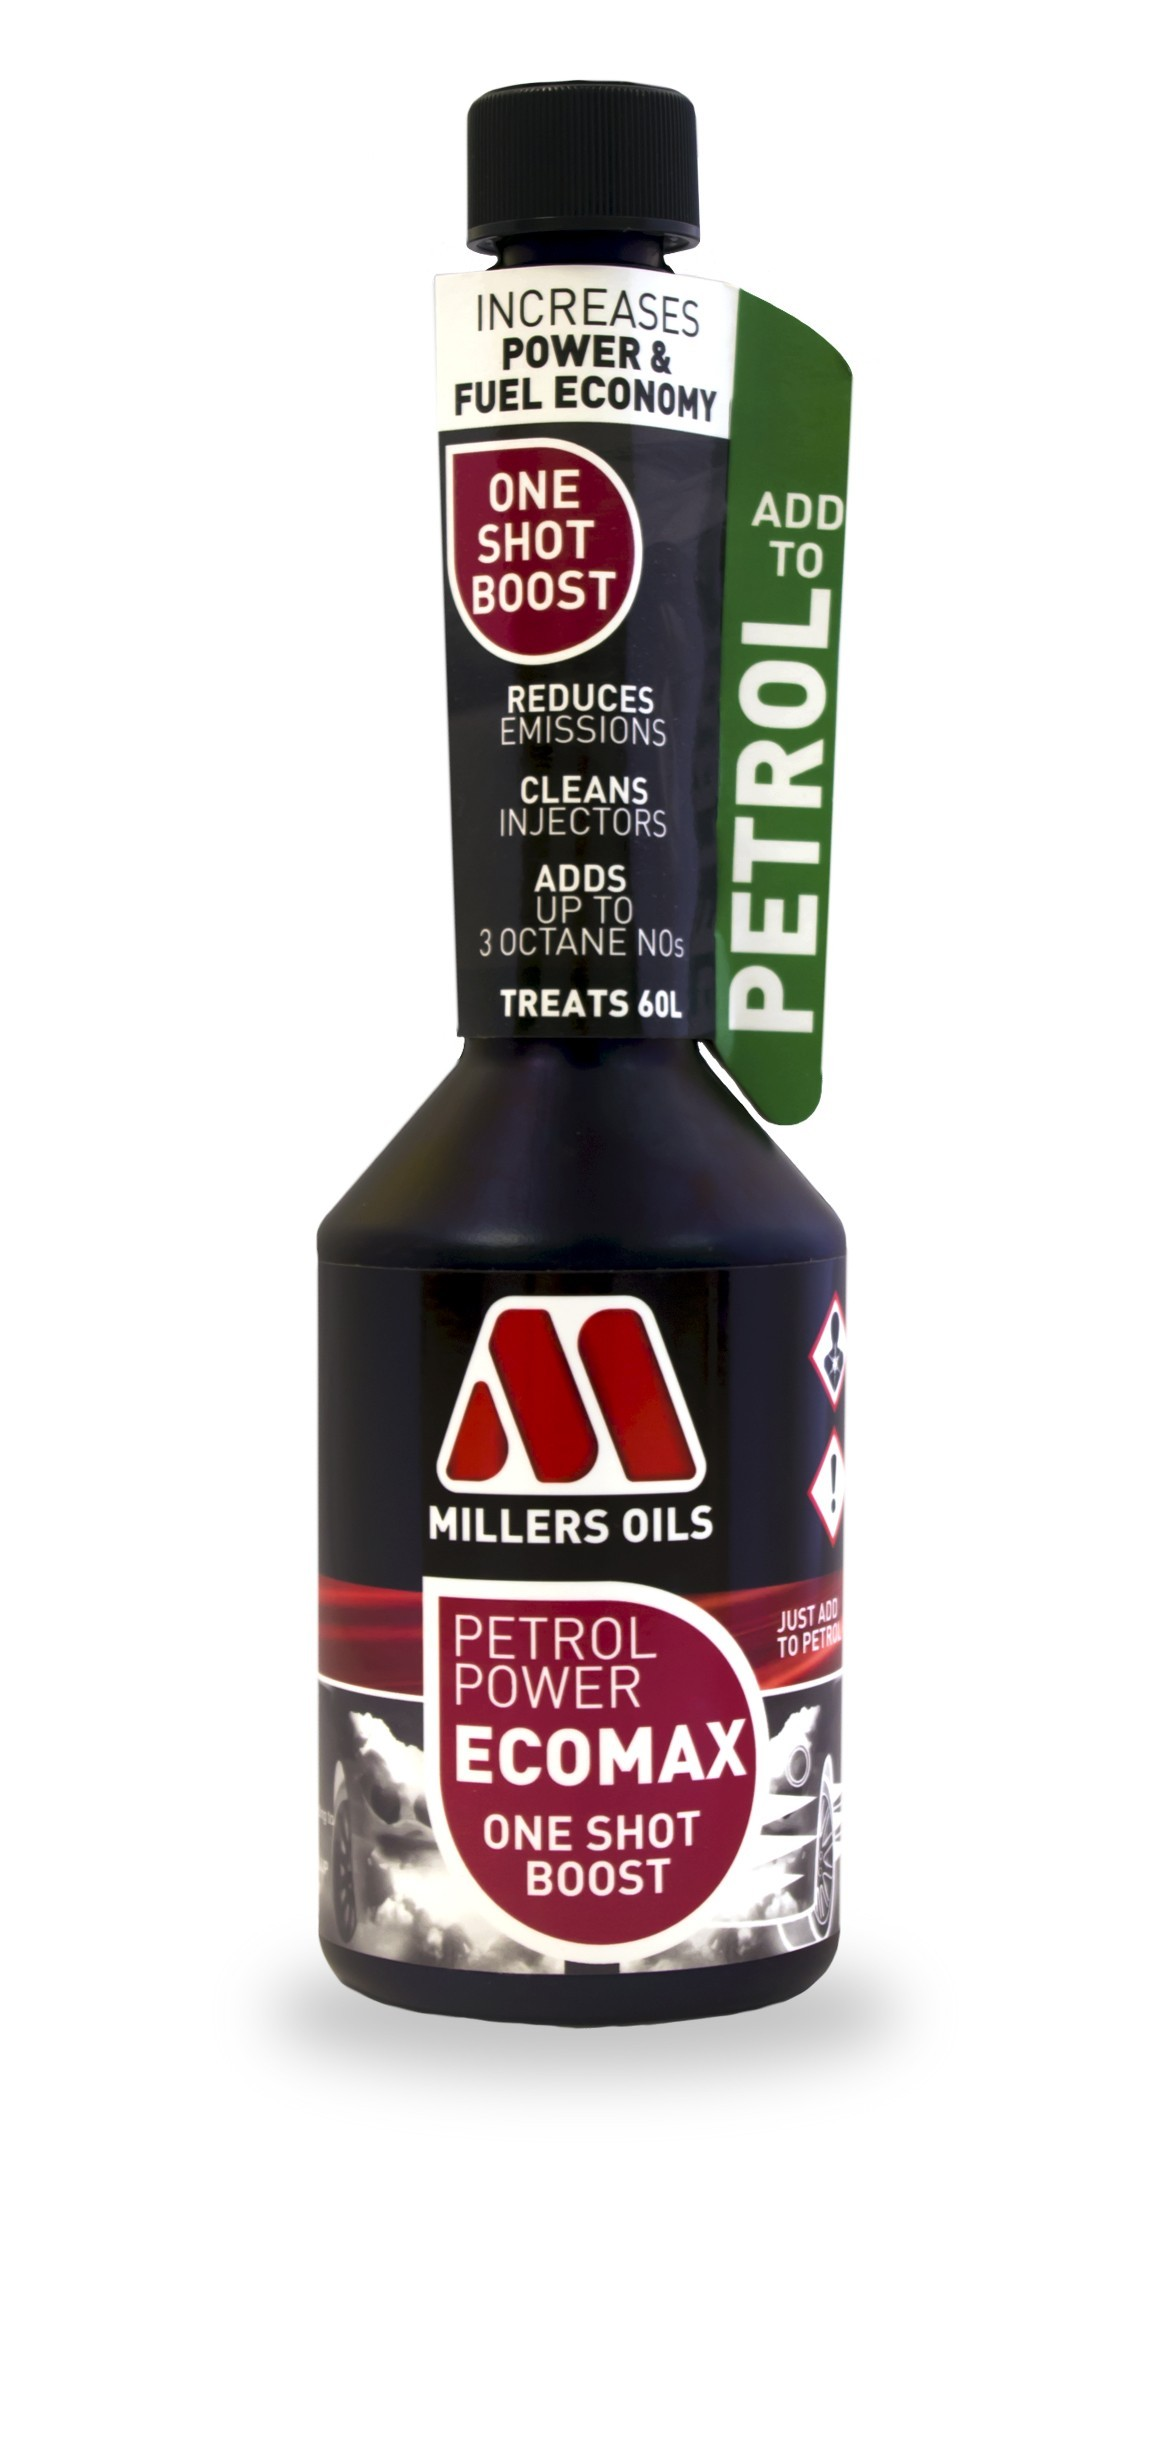 Millers Oils Petrol Power ECOMAX One Shot Boost 250ml